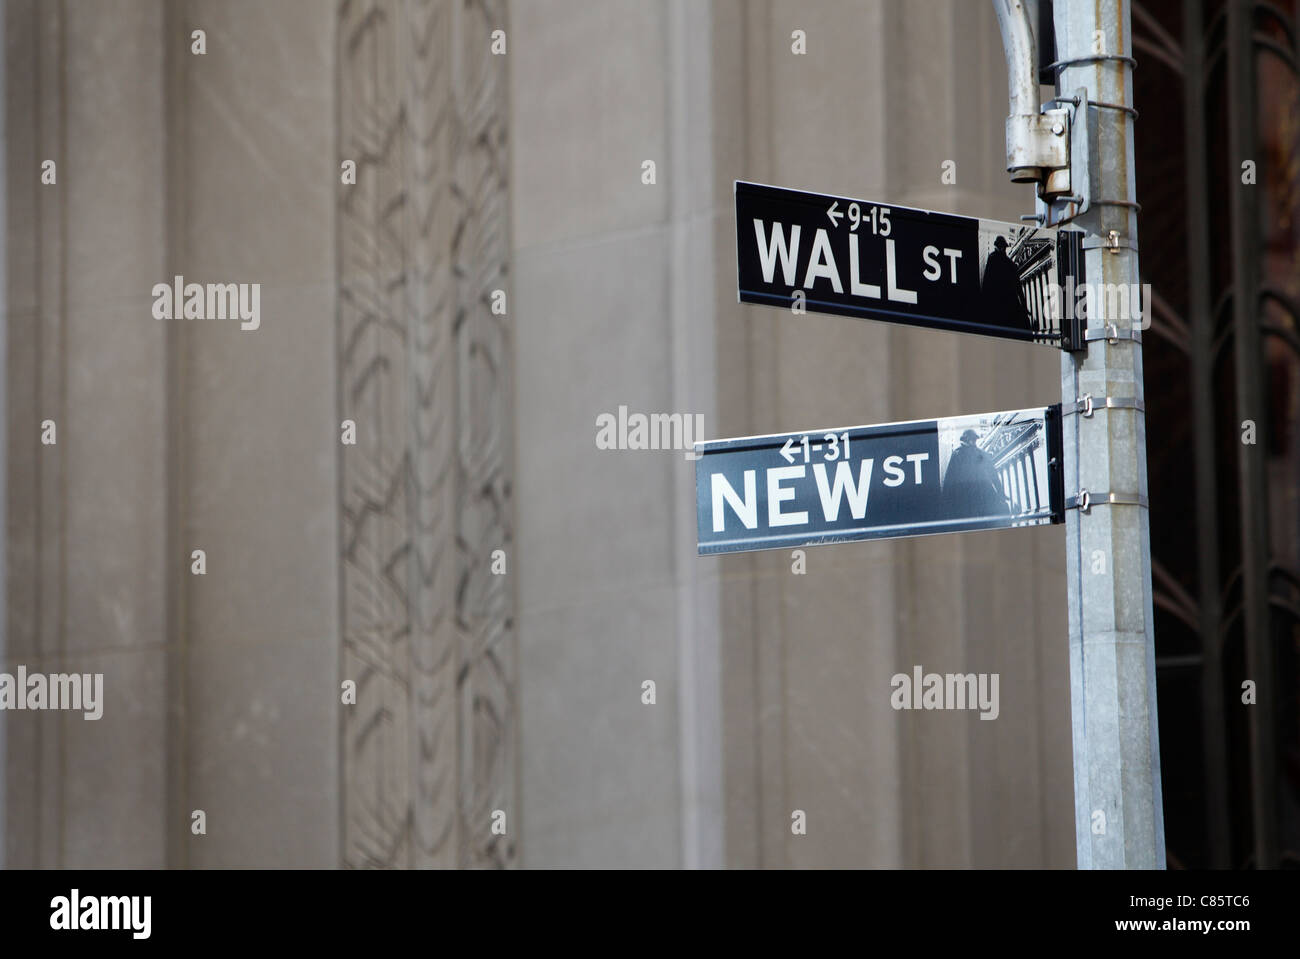 wall street street sign in New York City - Stock Image